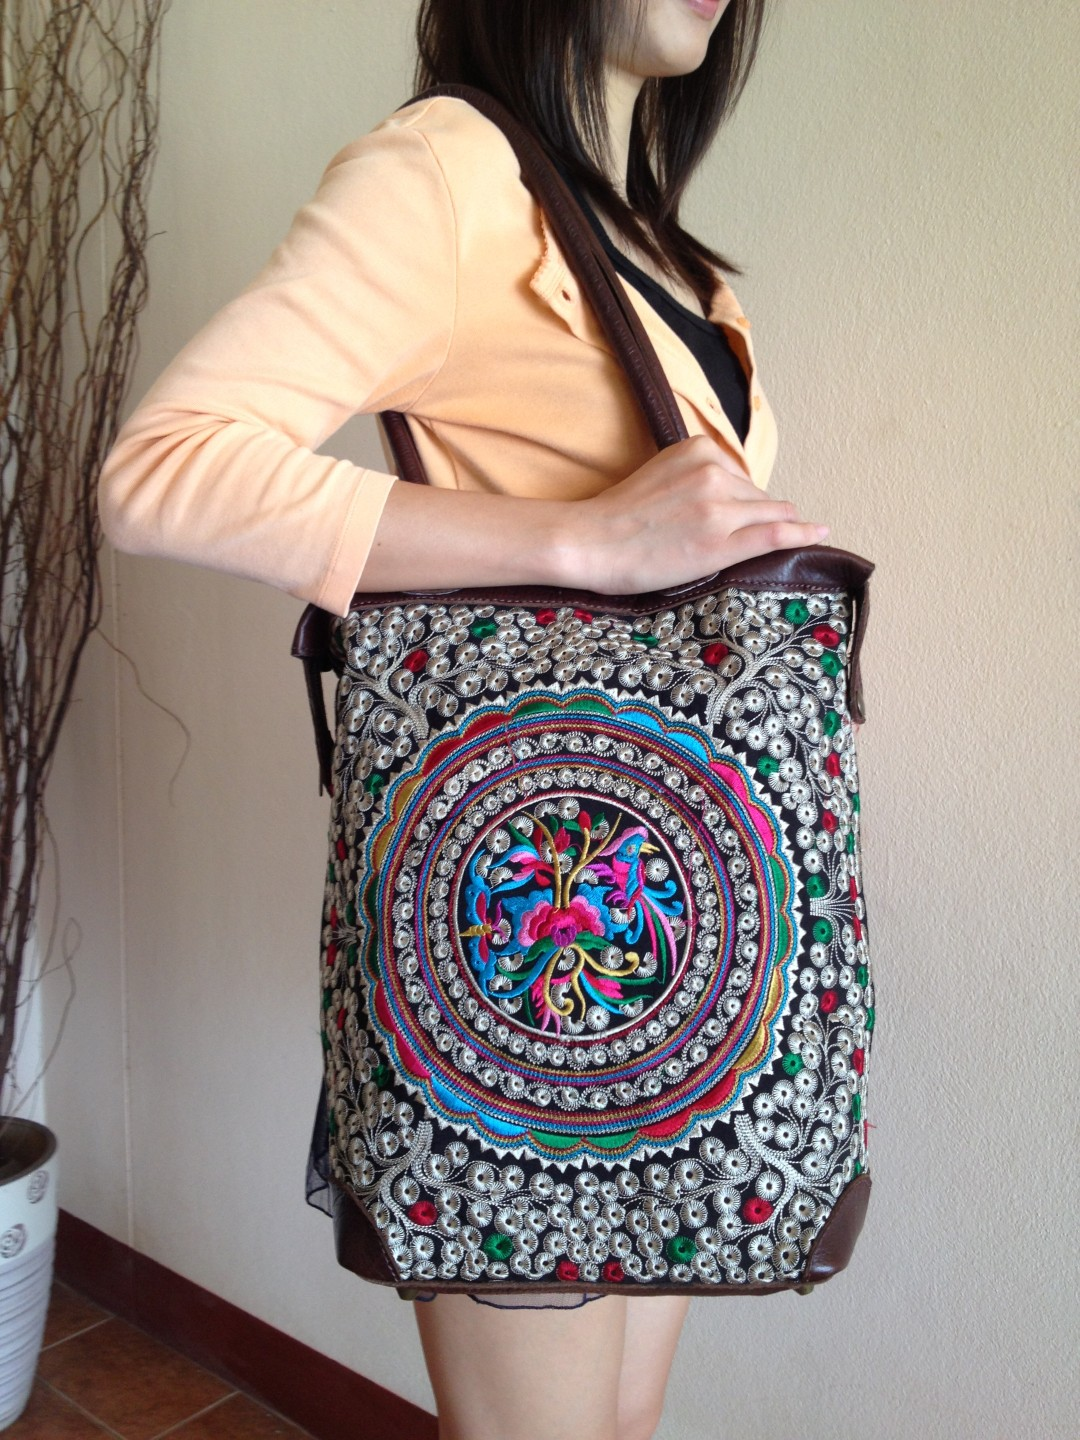 ... Big Circle Flower Colorful Leather Tote Bag embroidery of the Hill  tribes in Thailand (KPS8604 ... 03f42227b2122